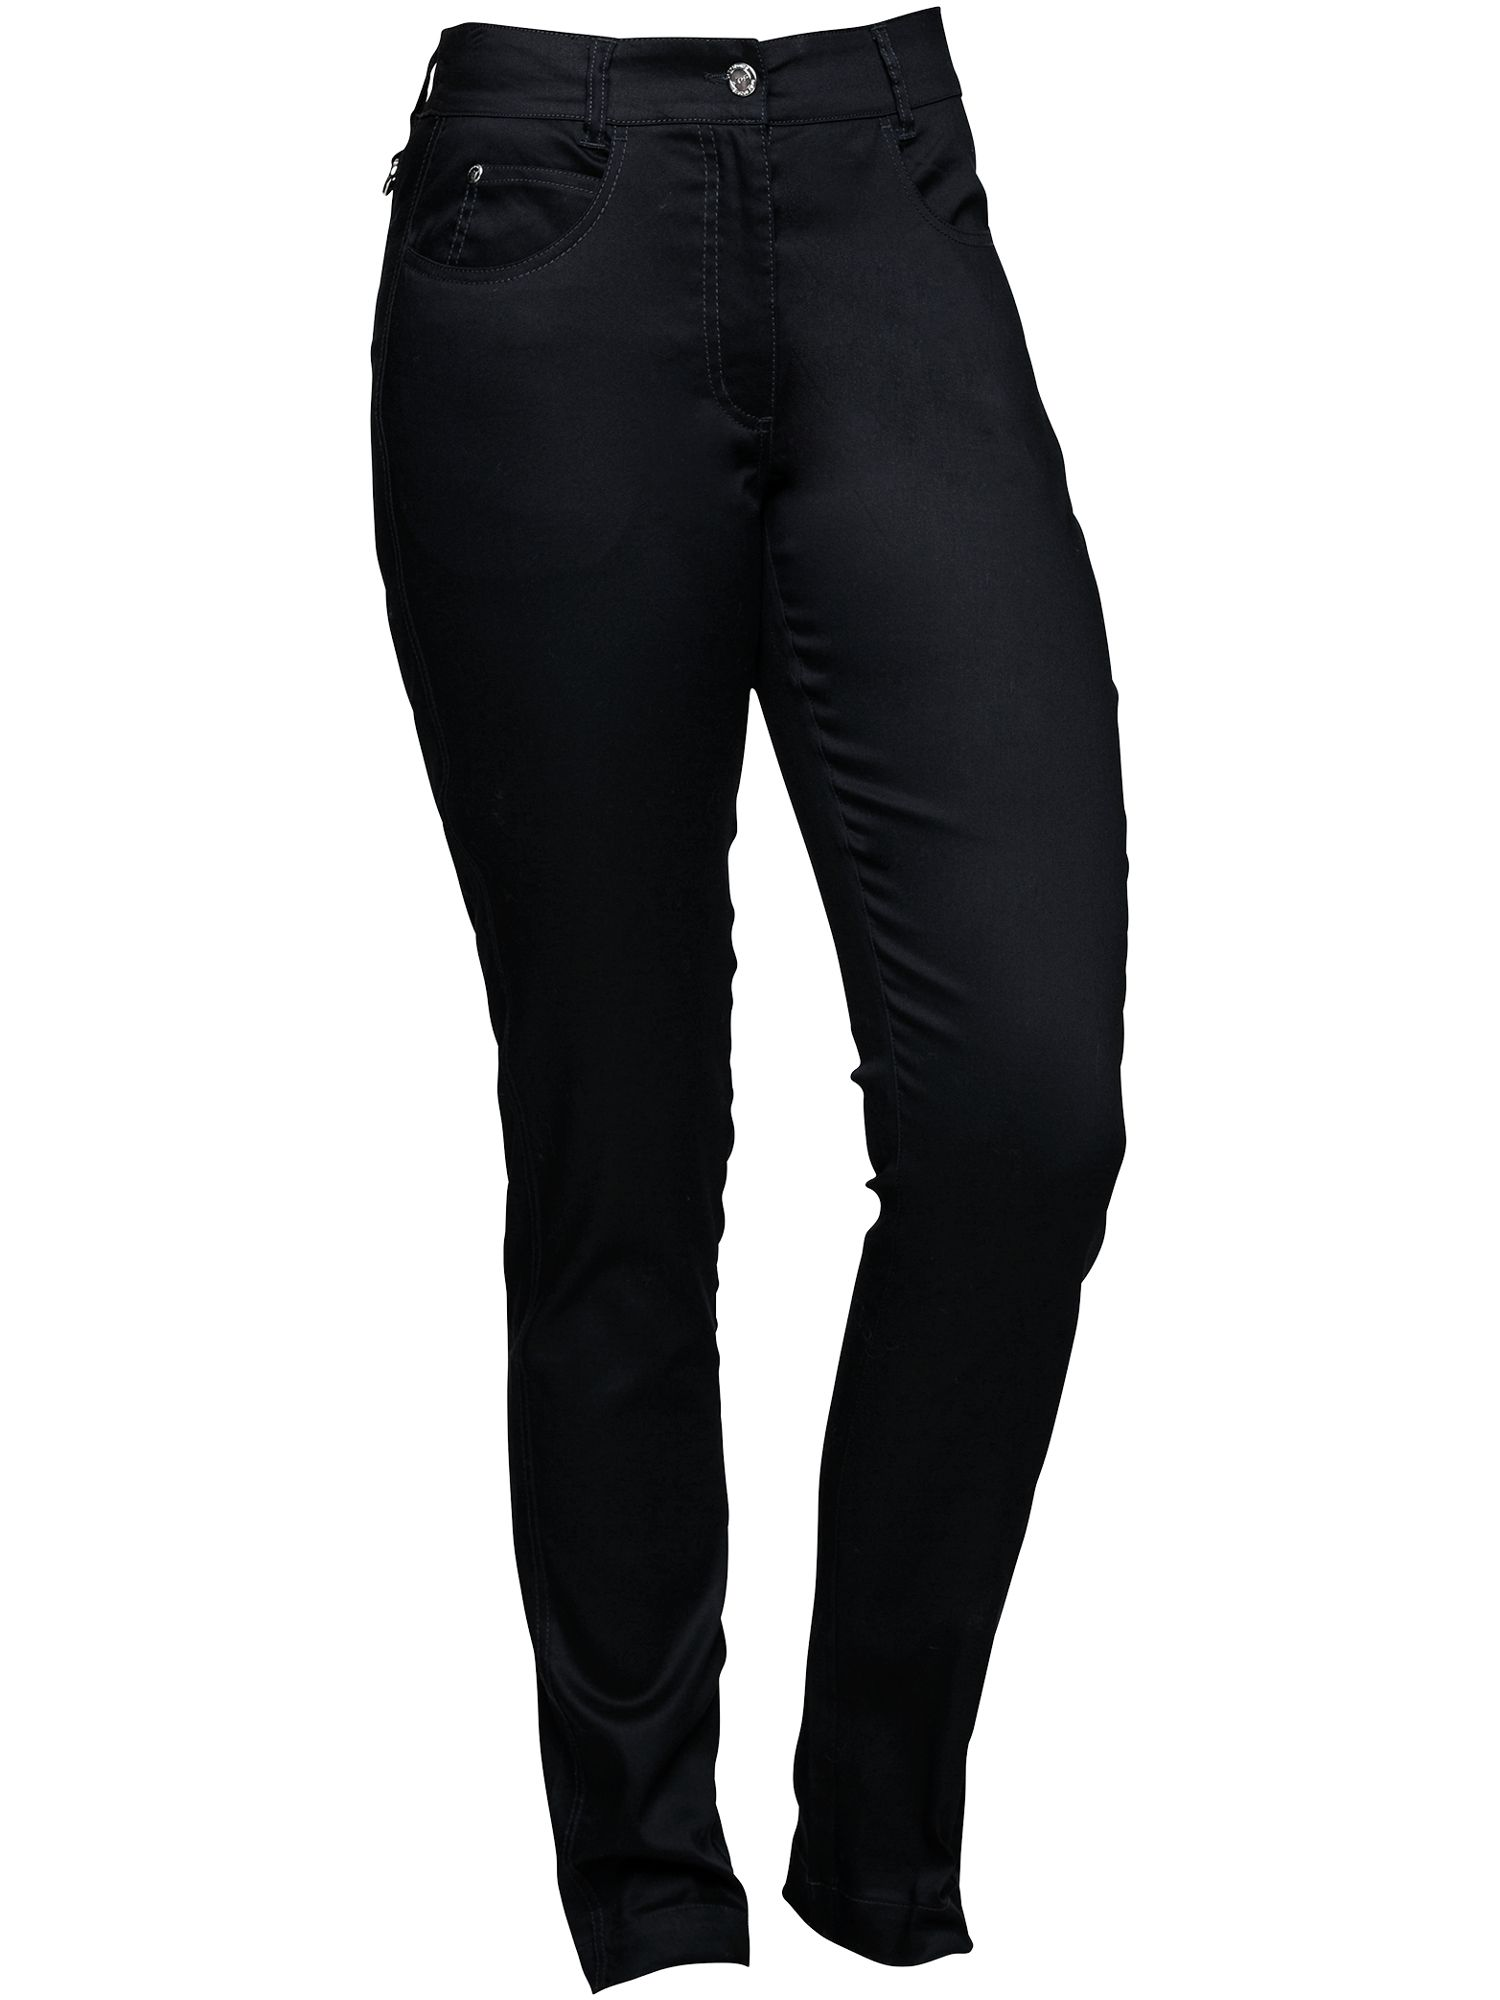 Daily Sports Swing trousers, Black